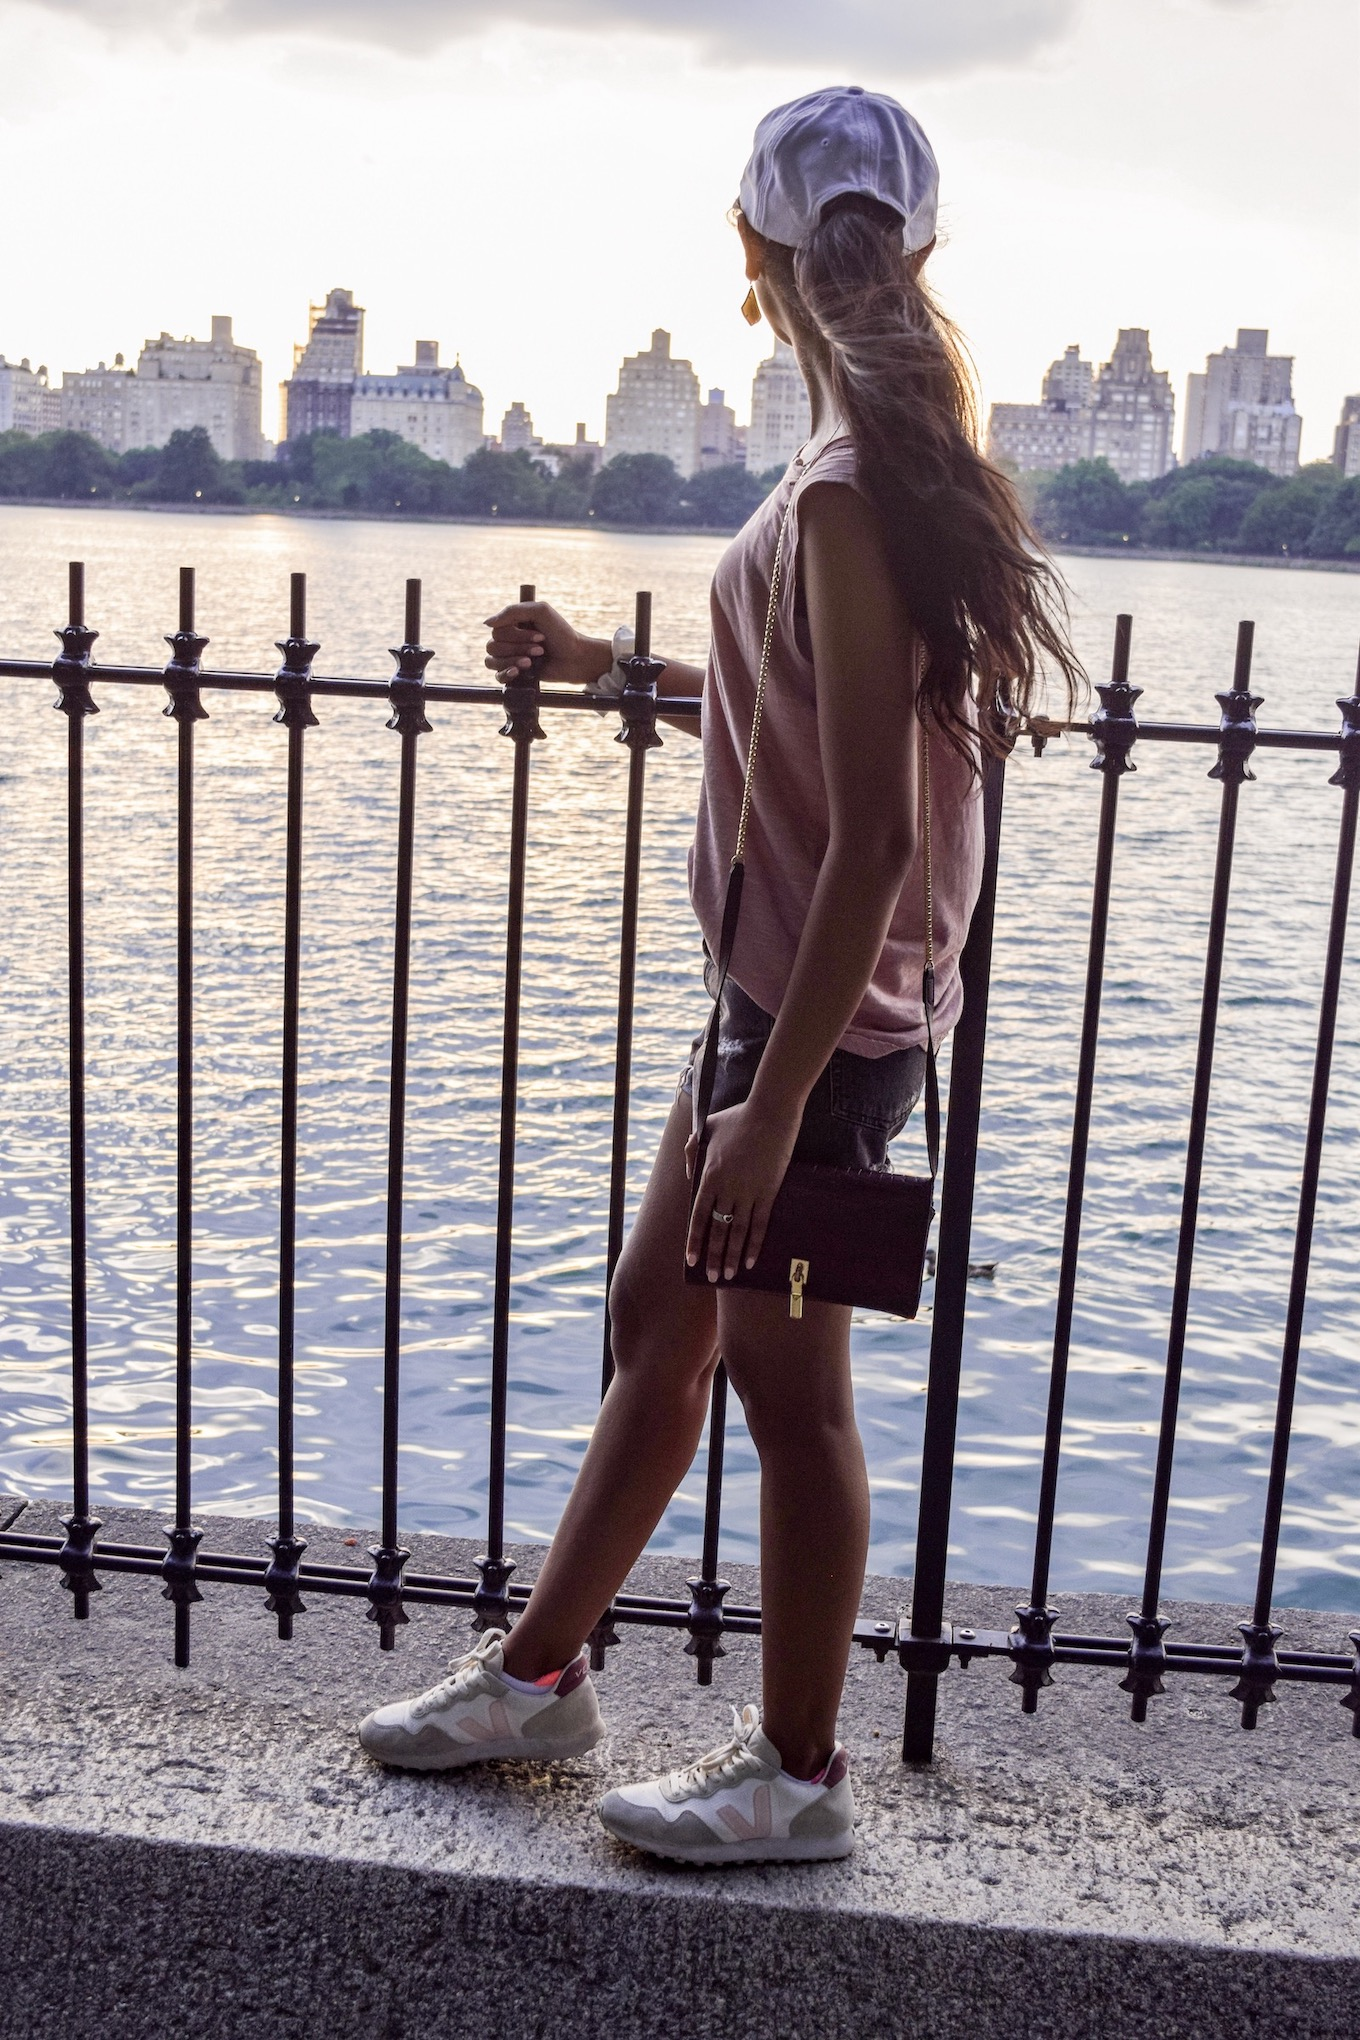 New York City outfit ideas // A Week Of Conscious Trend-Forward Outfits With Sabrina Ramkhelawan From Flaunt Your Fancy on The Good Trade